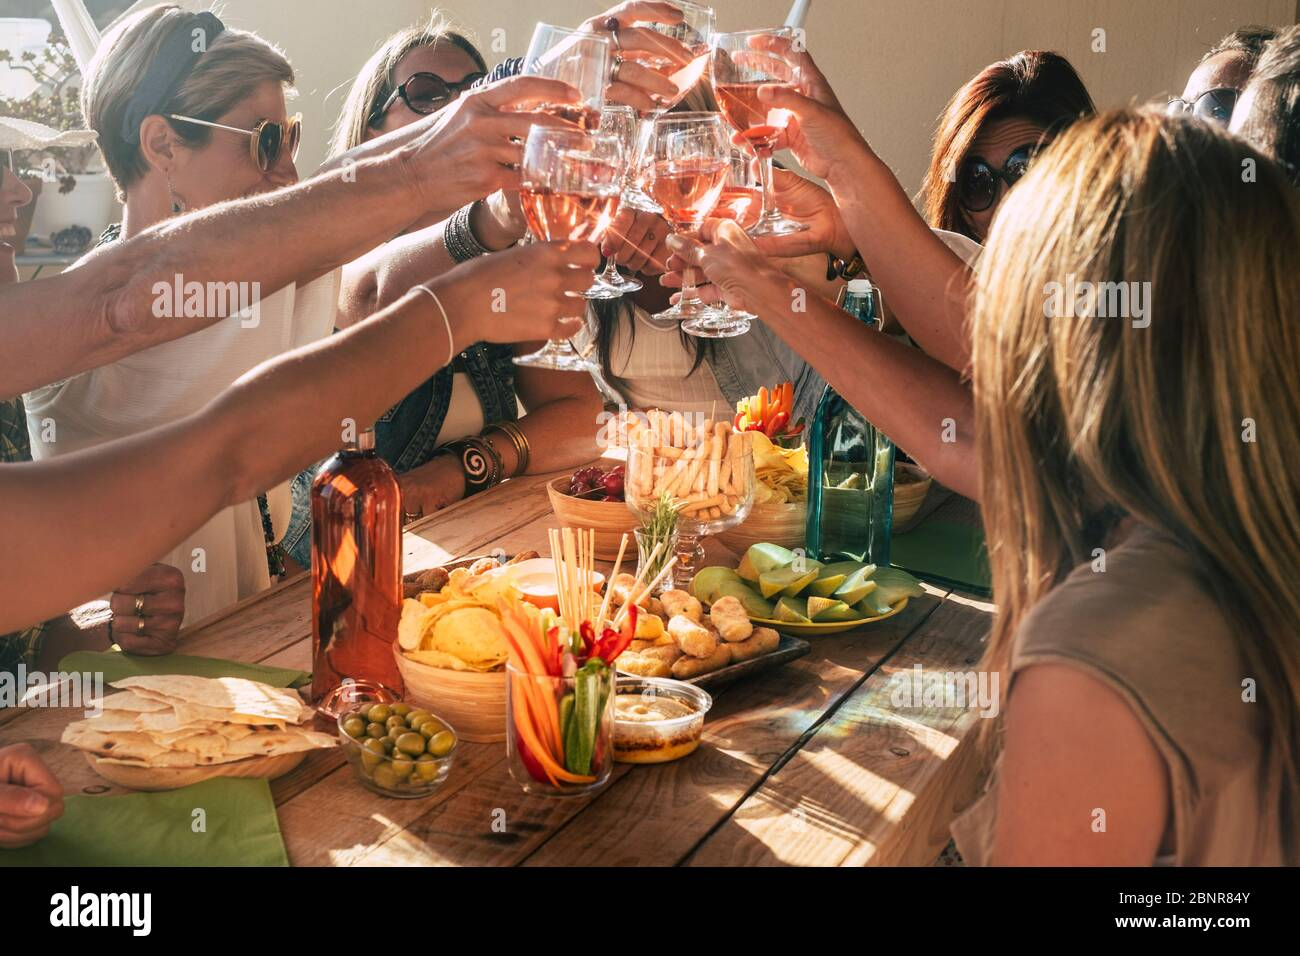 Group of happy and cheerful caucasian people women have fun all together drinking and toasting with red wine - friendship and holiday celebration concept with adult females Stock Photo